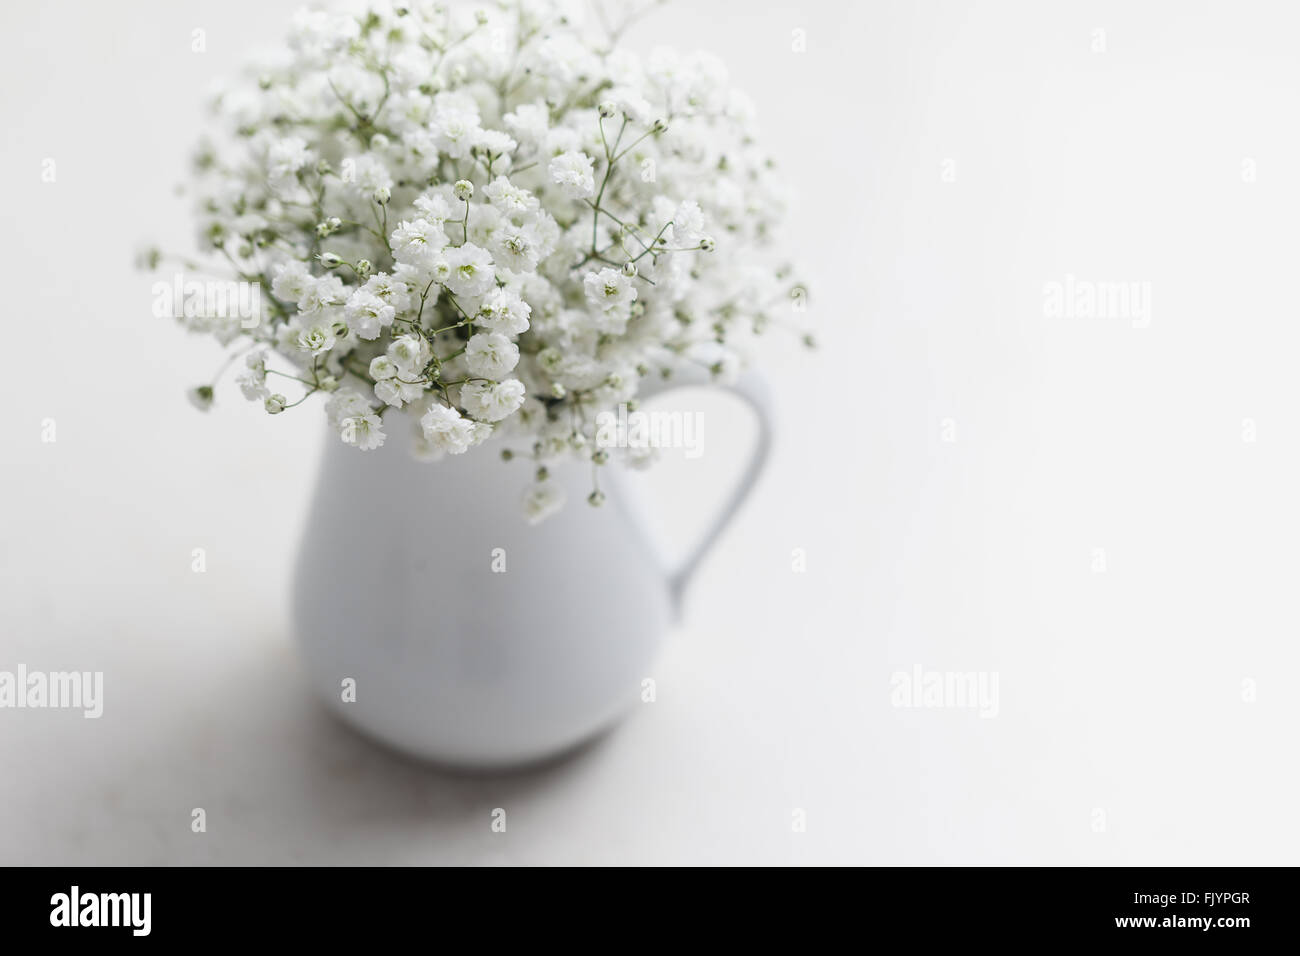 White babys breath flowers gypsophila in white vase stock photo white babys breath flowers gypsophila in white vase mightylinksfo